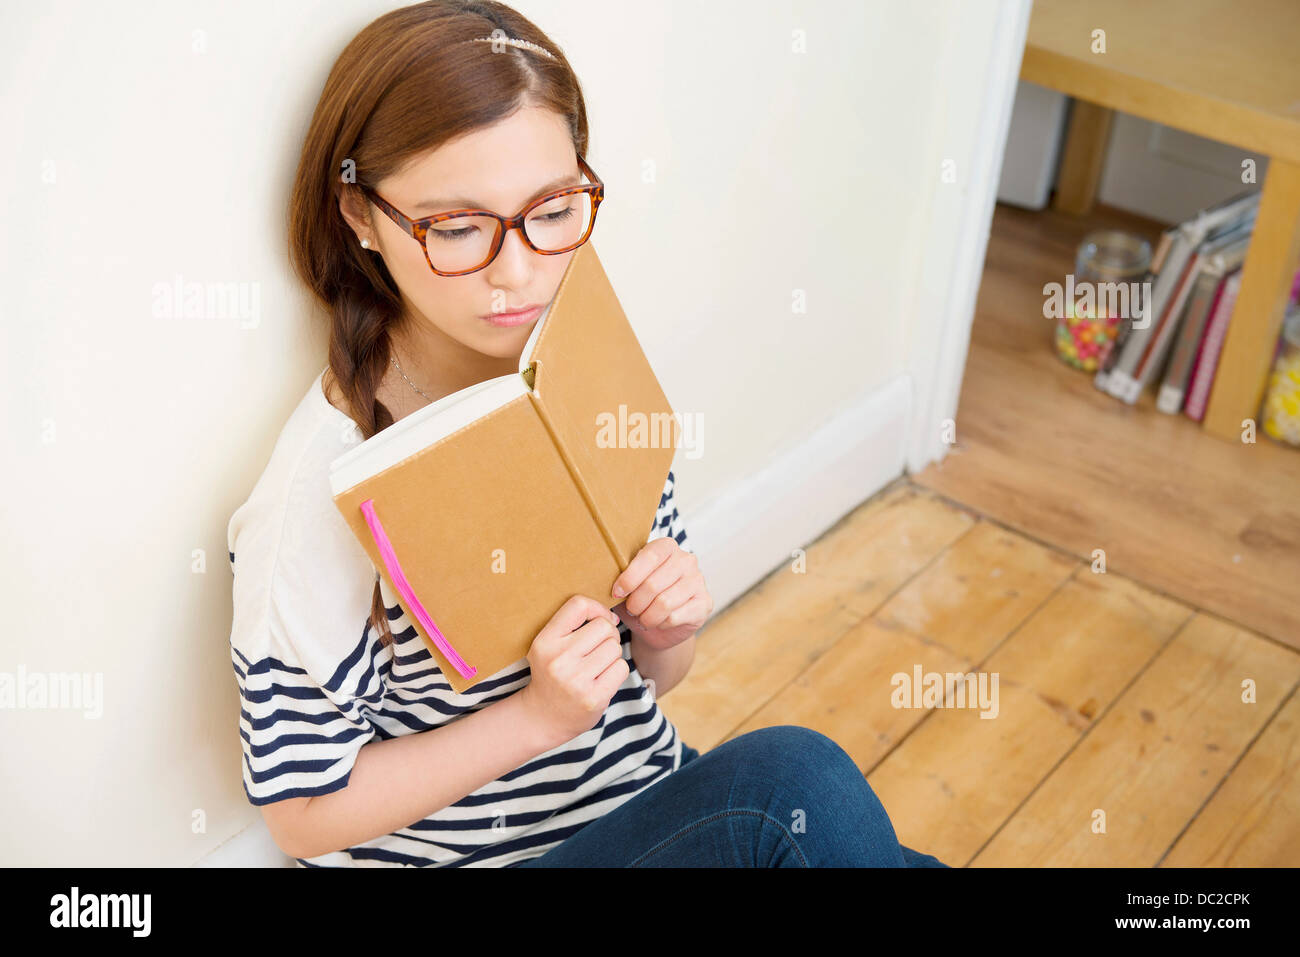 Woman day dreaming - Stock Image